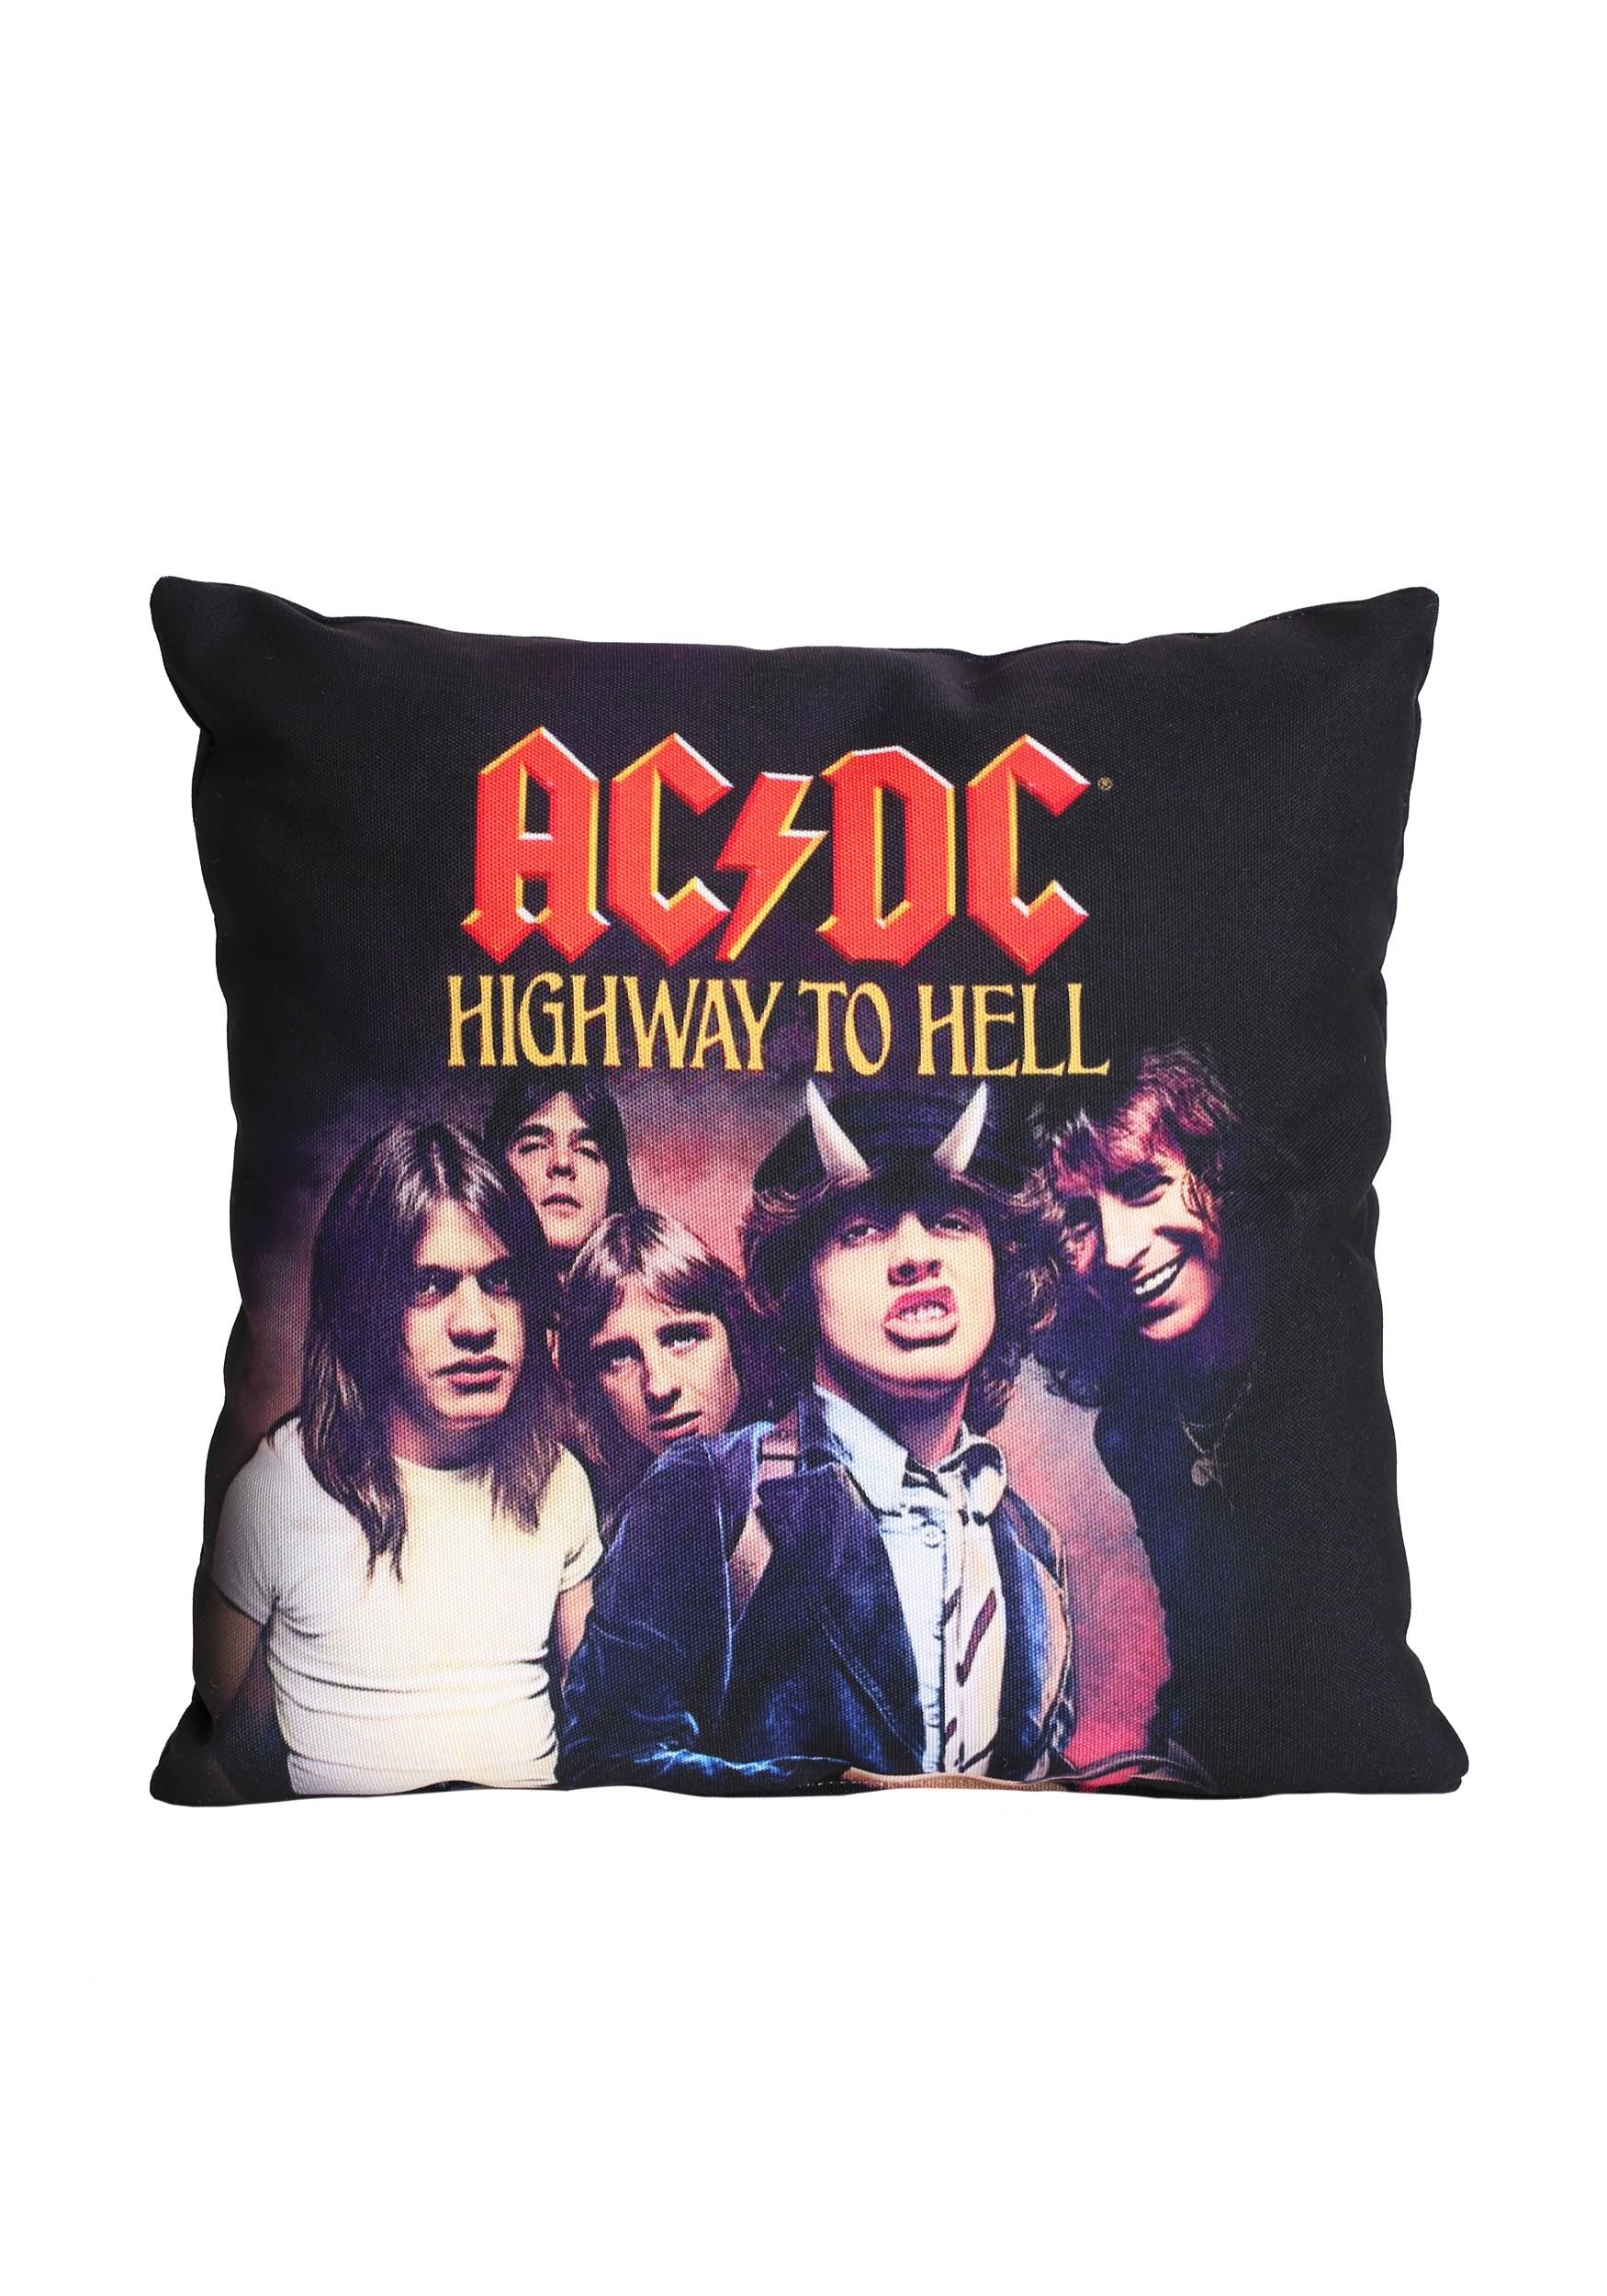 AC/DC Highway to Hell 14 x 14 Throw Pillow